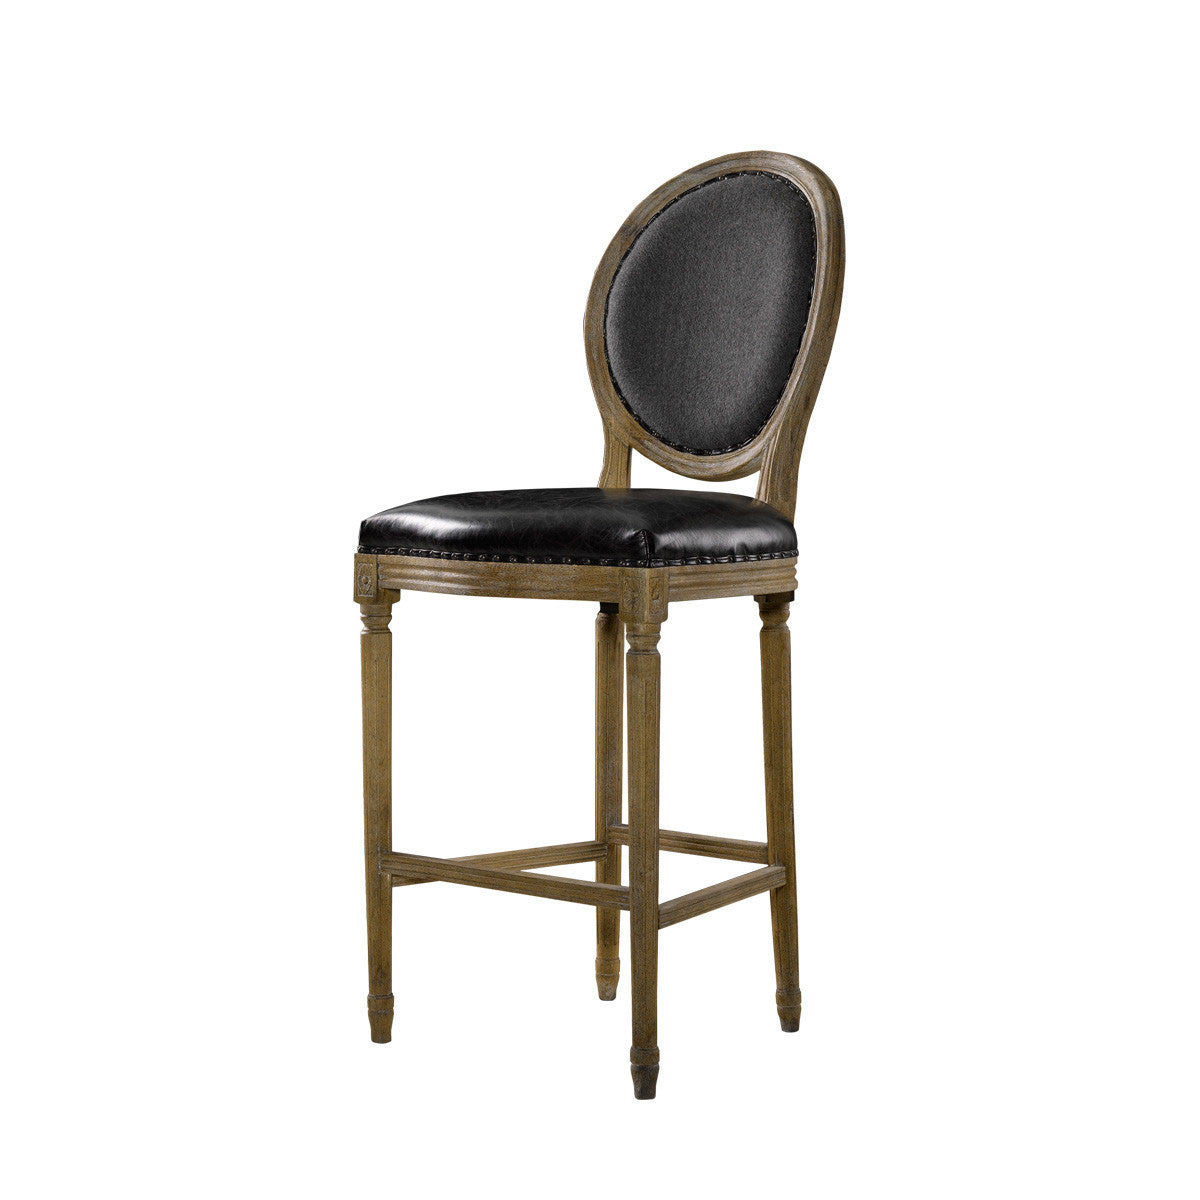 Magnificent Curations Limited Vintage Louis Slate Back High Bar Stool Gamerscity Chair Design For Home Gamerscityorg